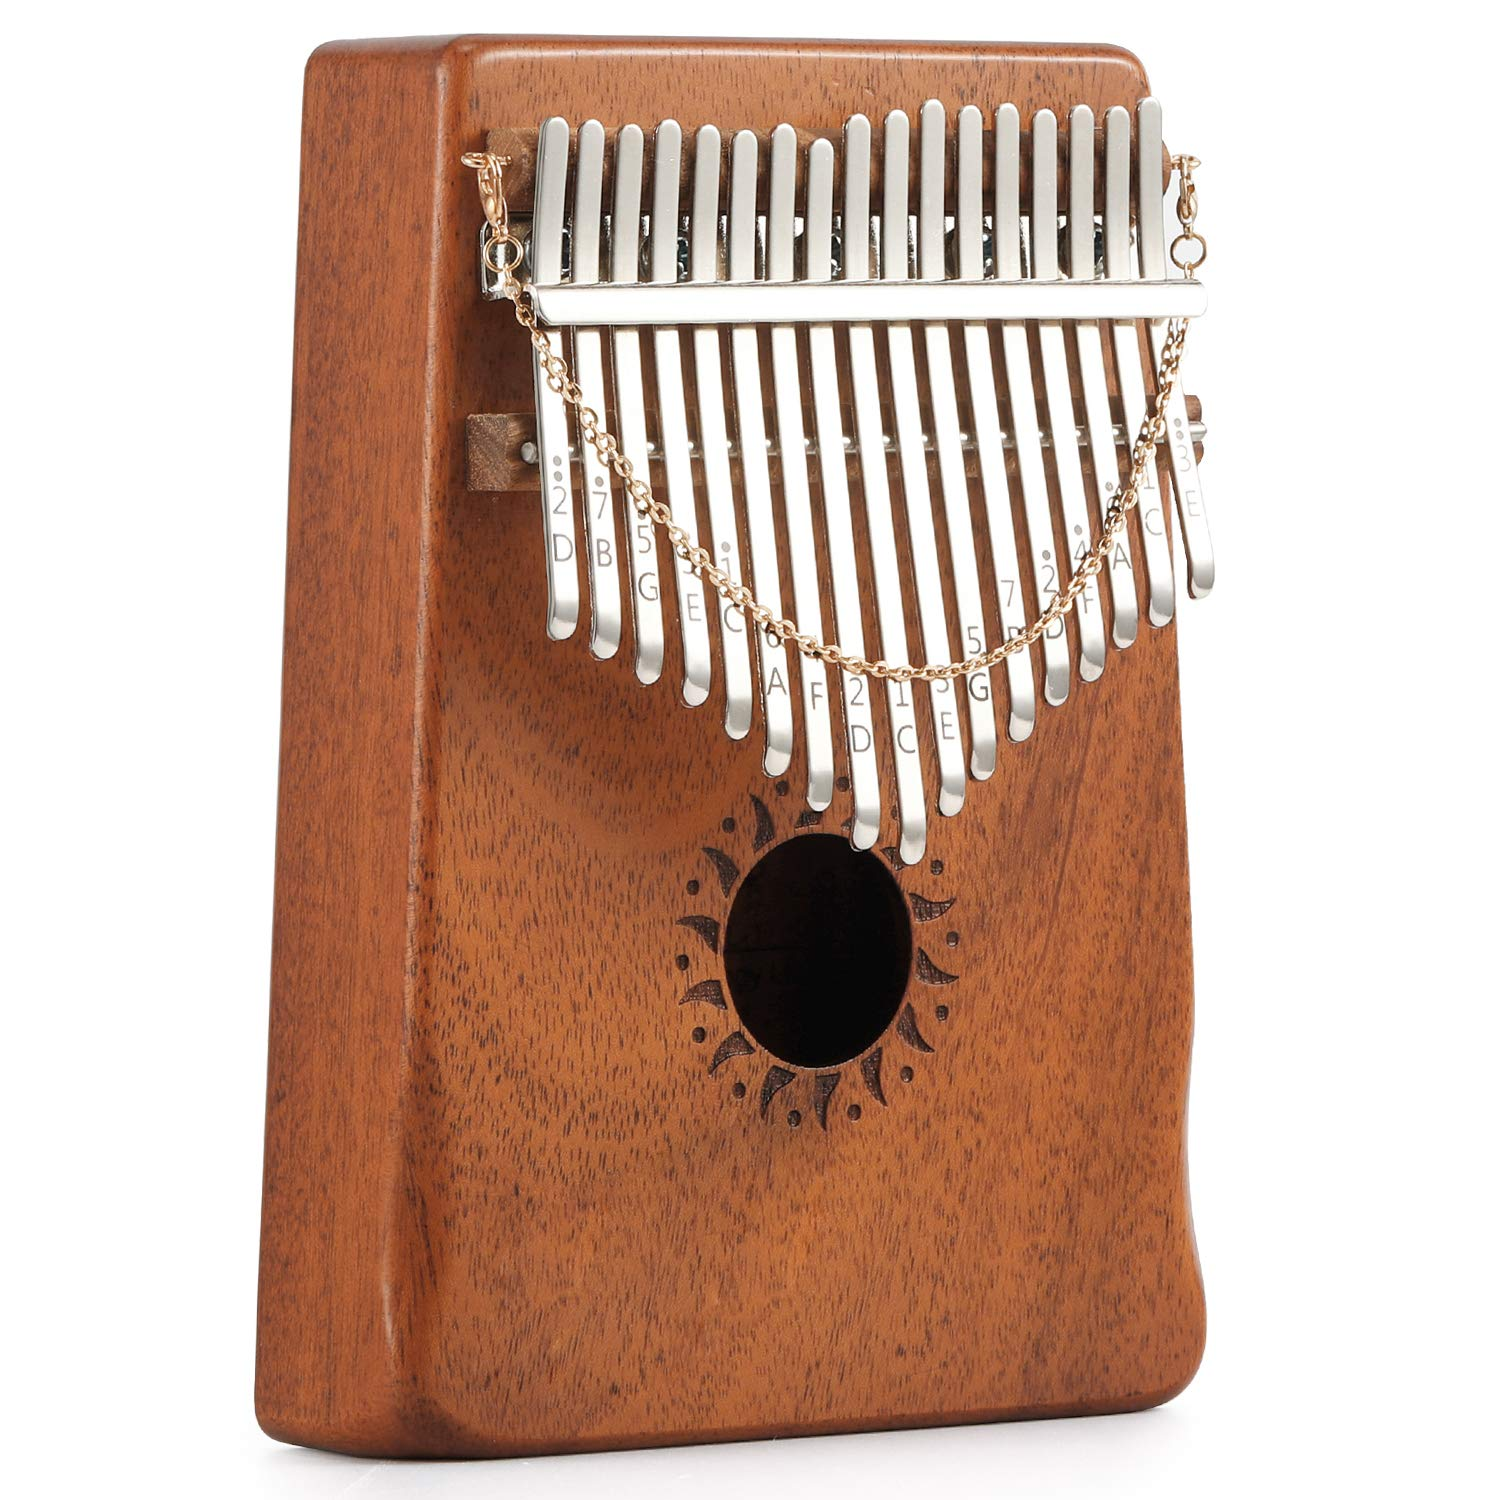 Donner 17 Key Kalimba Thumb Piano Solid Finger Piano Mahogany Body DKL-17 With Hard Case by Donner (Image #4)